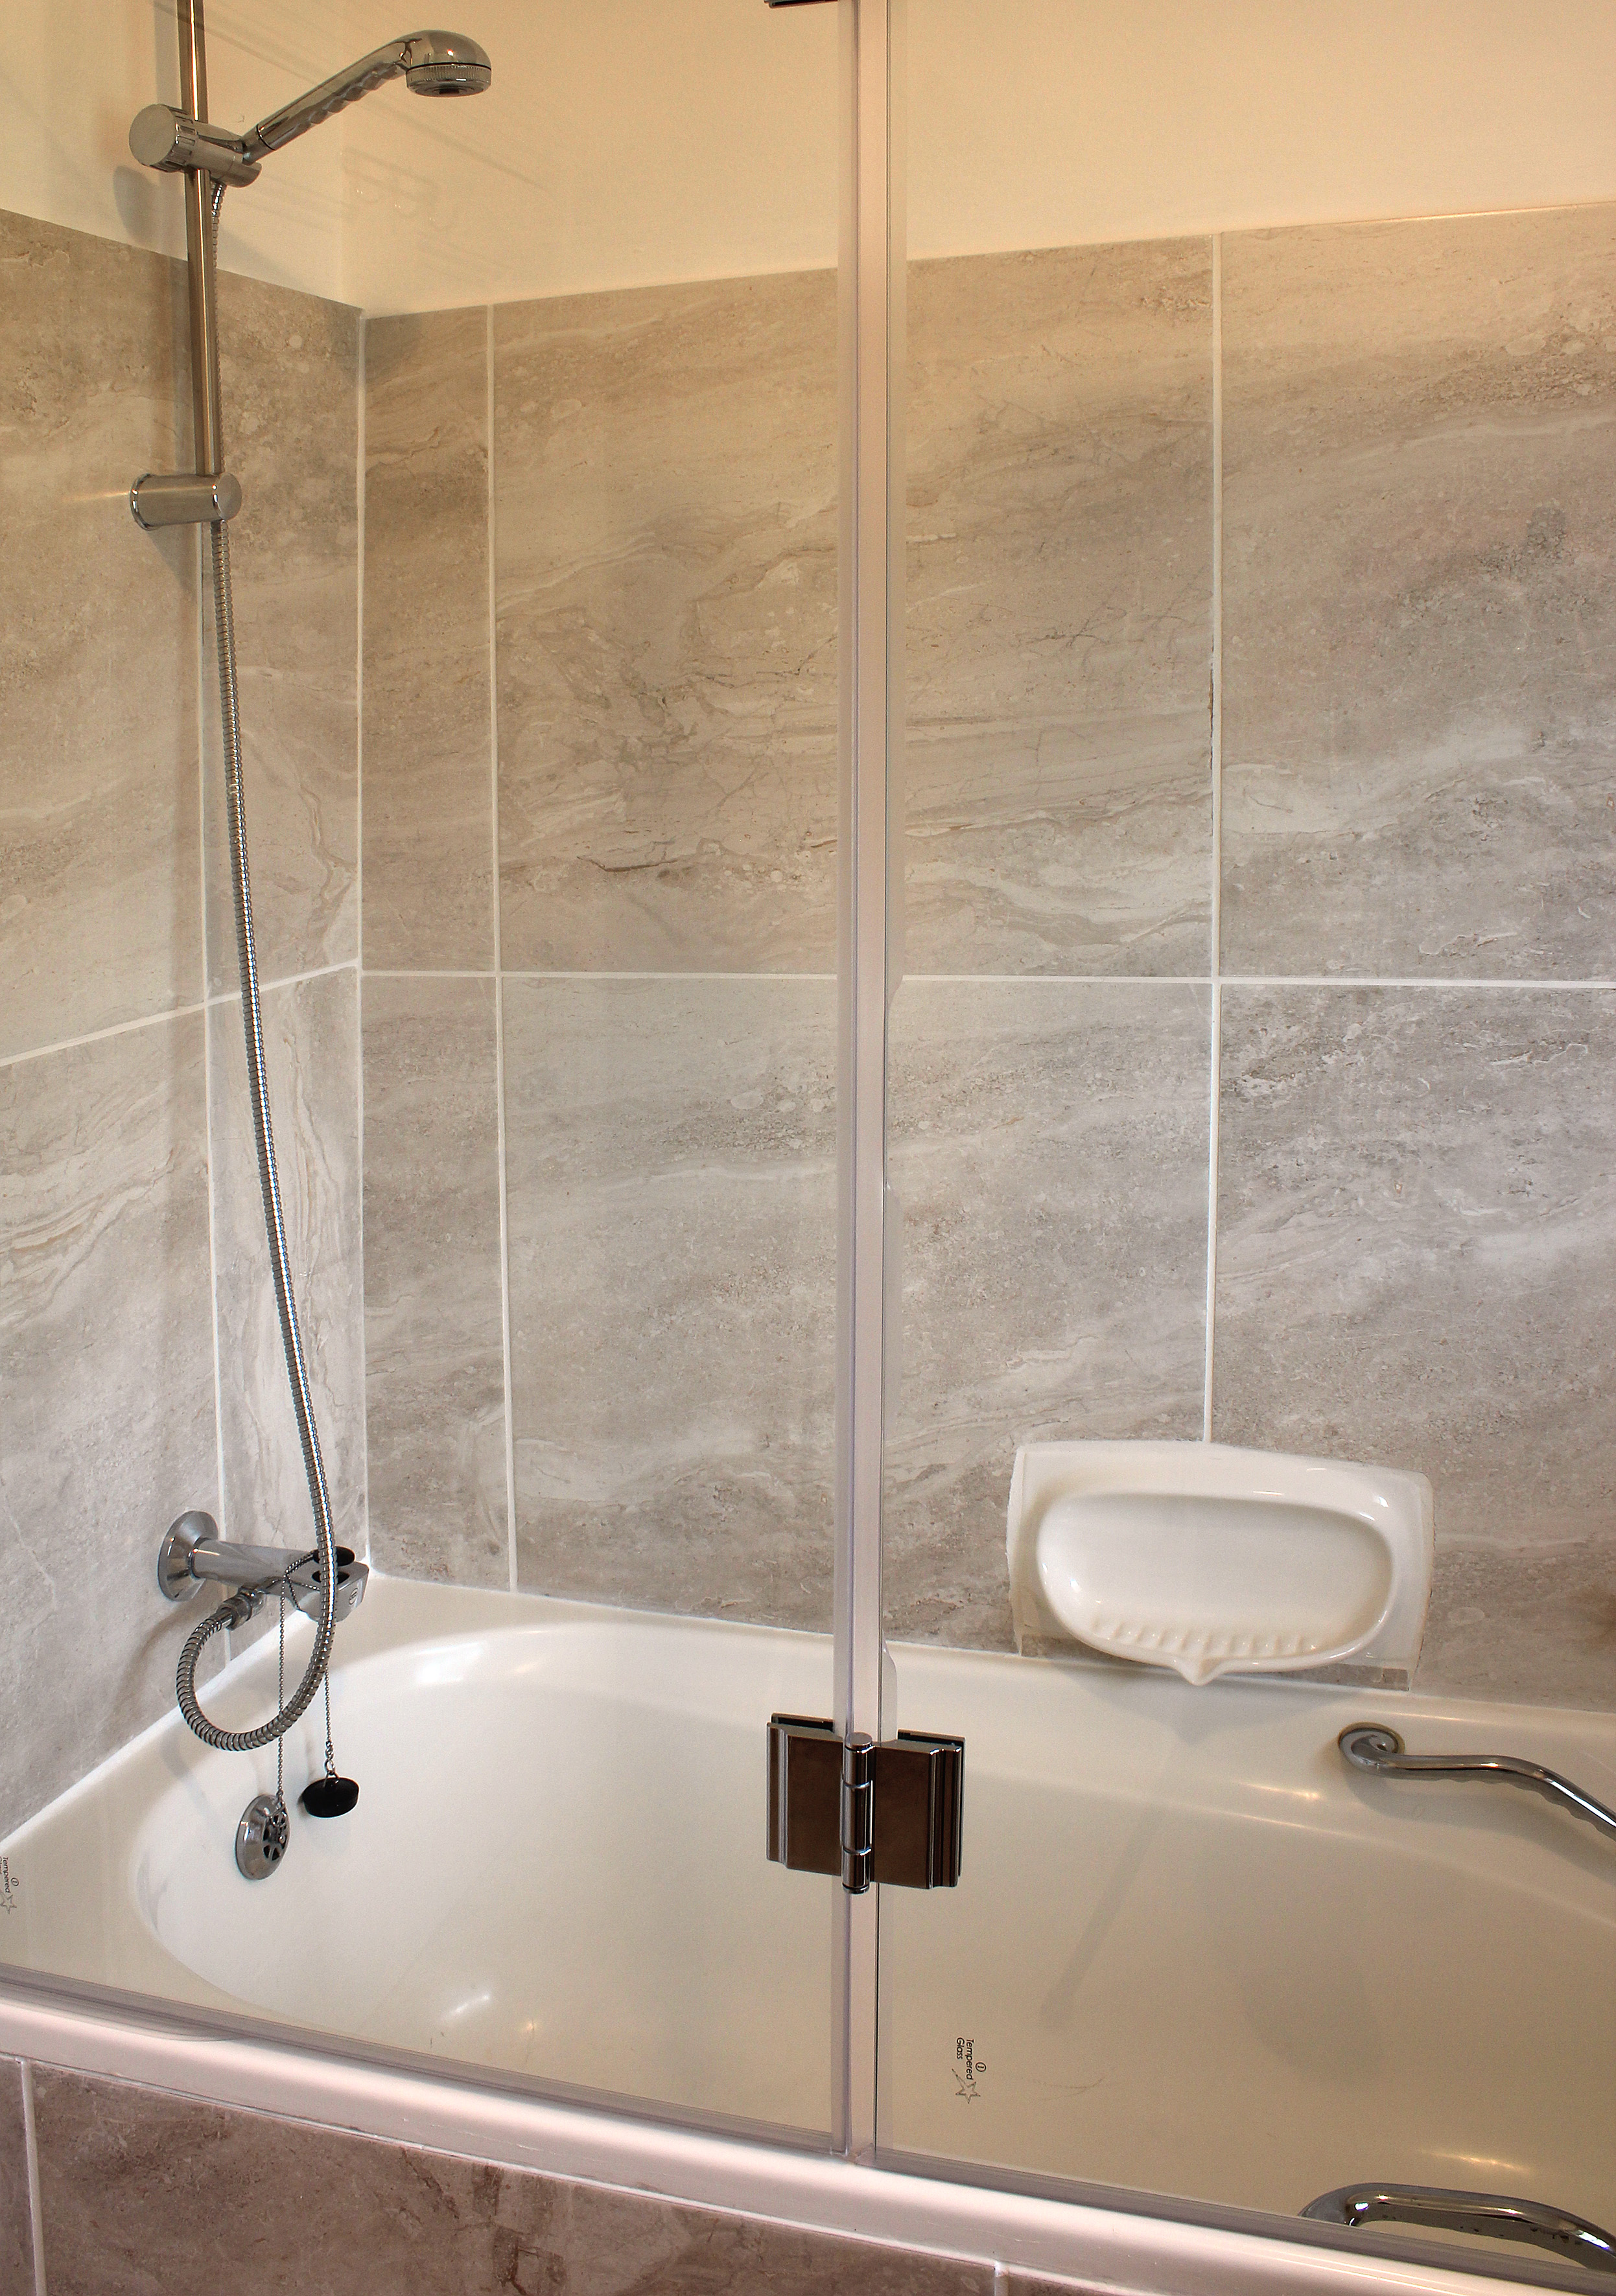 do spouts handles shower how and roman replace questions i tub plumbing home